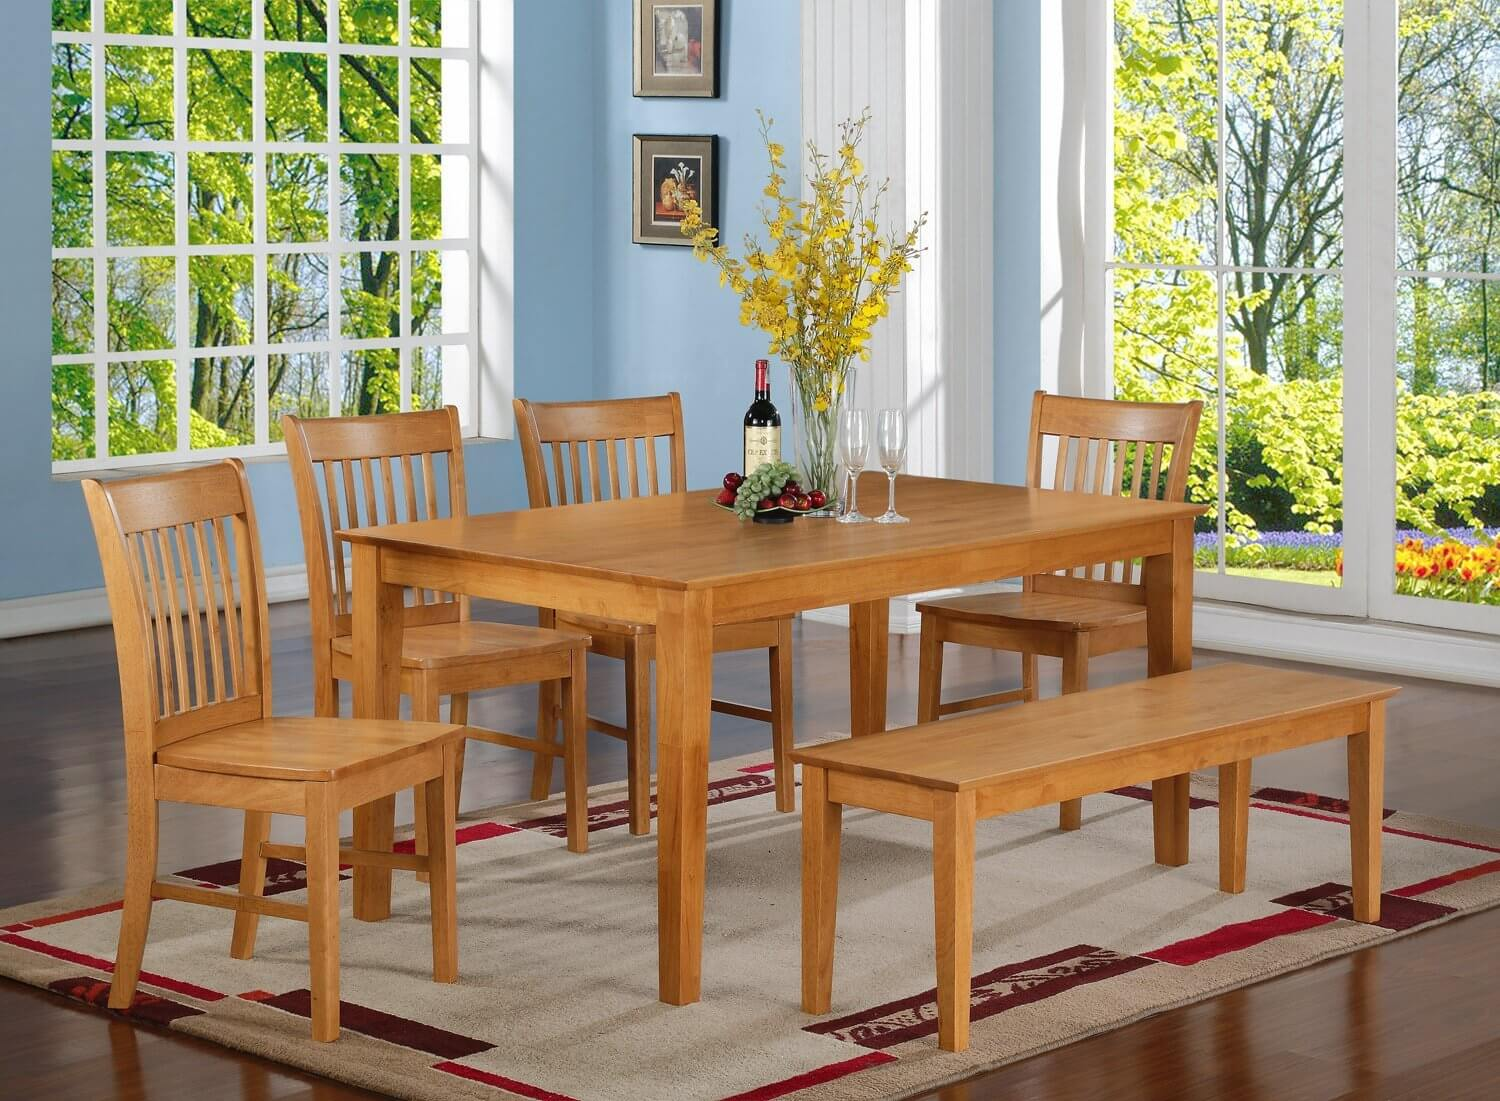 dining room sets bench seating kitchen tables sets Oak finish six piece bench style dining room set with large rectangle table It s